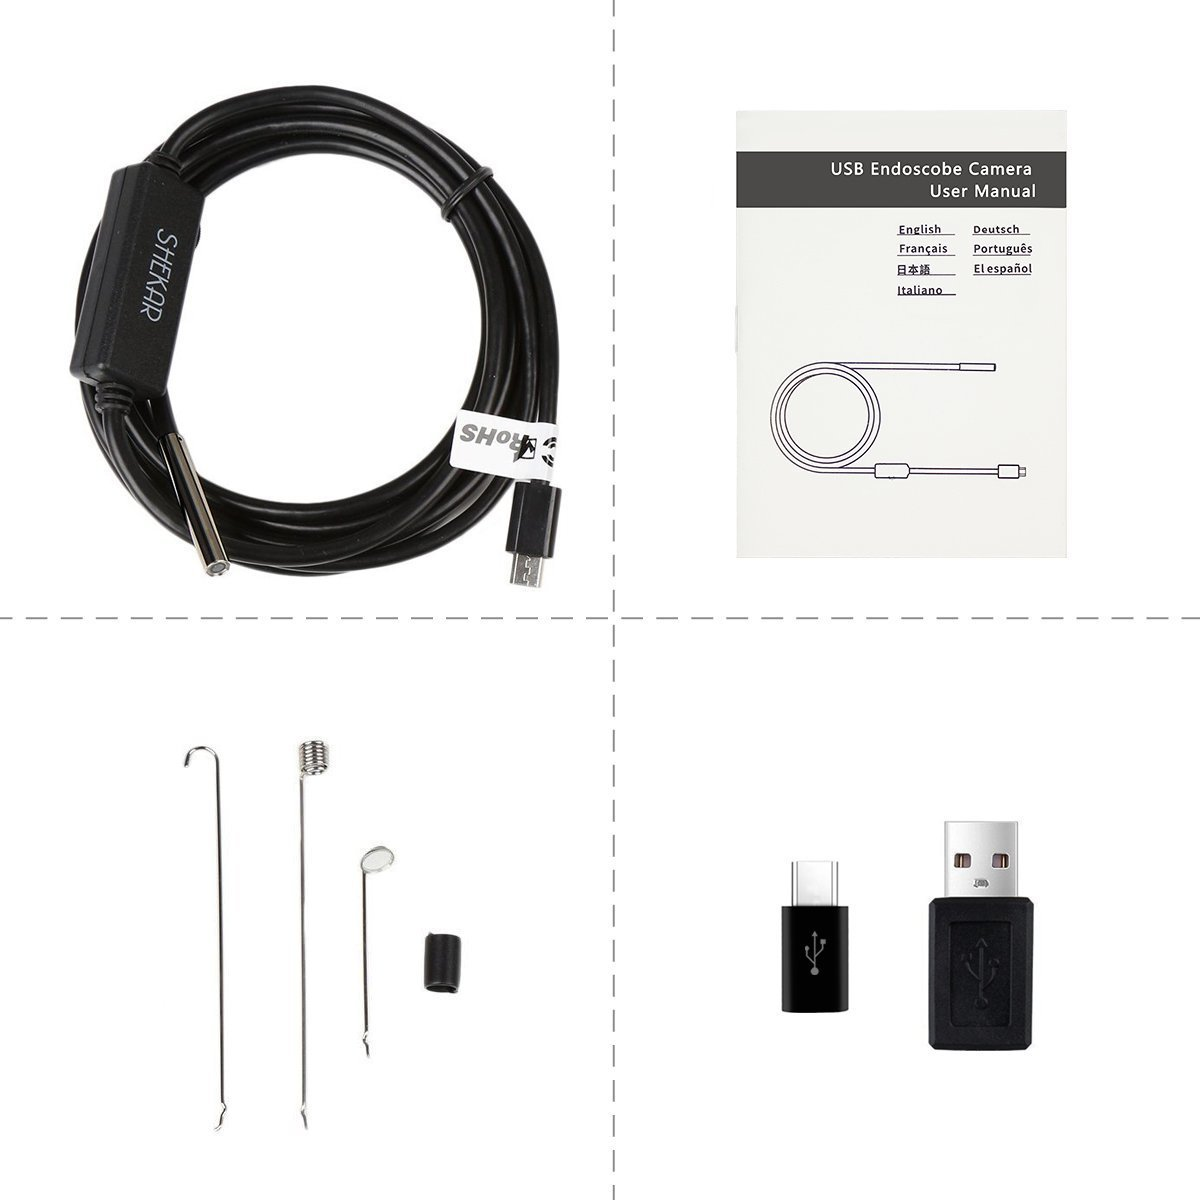 0.21 Inch Slim Camera Head USB Endoscope Borescope with Semi Rigid Cable USB Type C Adapter for PC Notebook and Android Device Upgraded 5M//16.4ft Cable